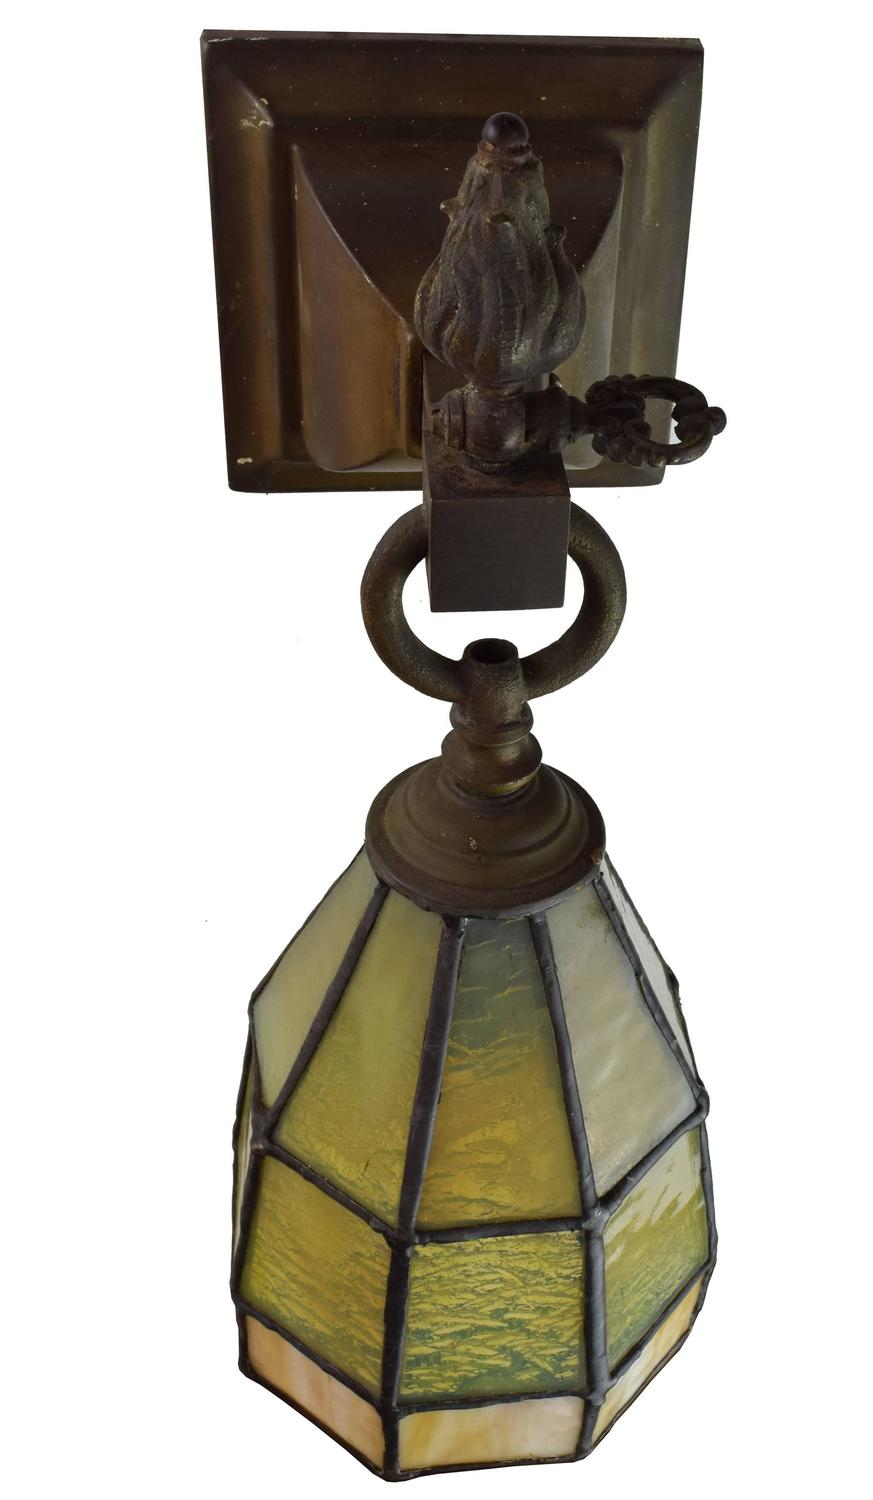 Stained Glass Light Fixtures Wall Sconces : Rare Arts and Crafts Sconce Pair with Stained Glass Shade For Sale at 1stdibs